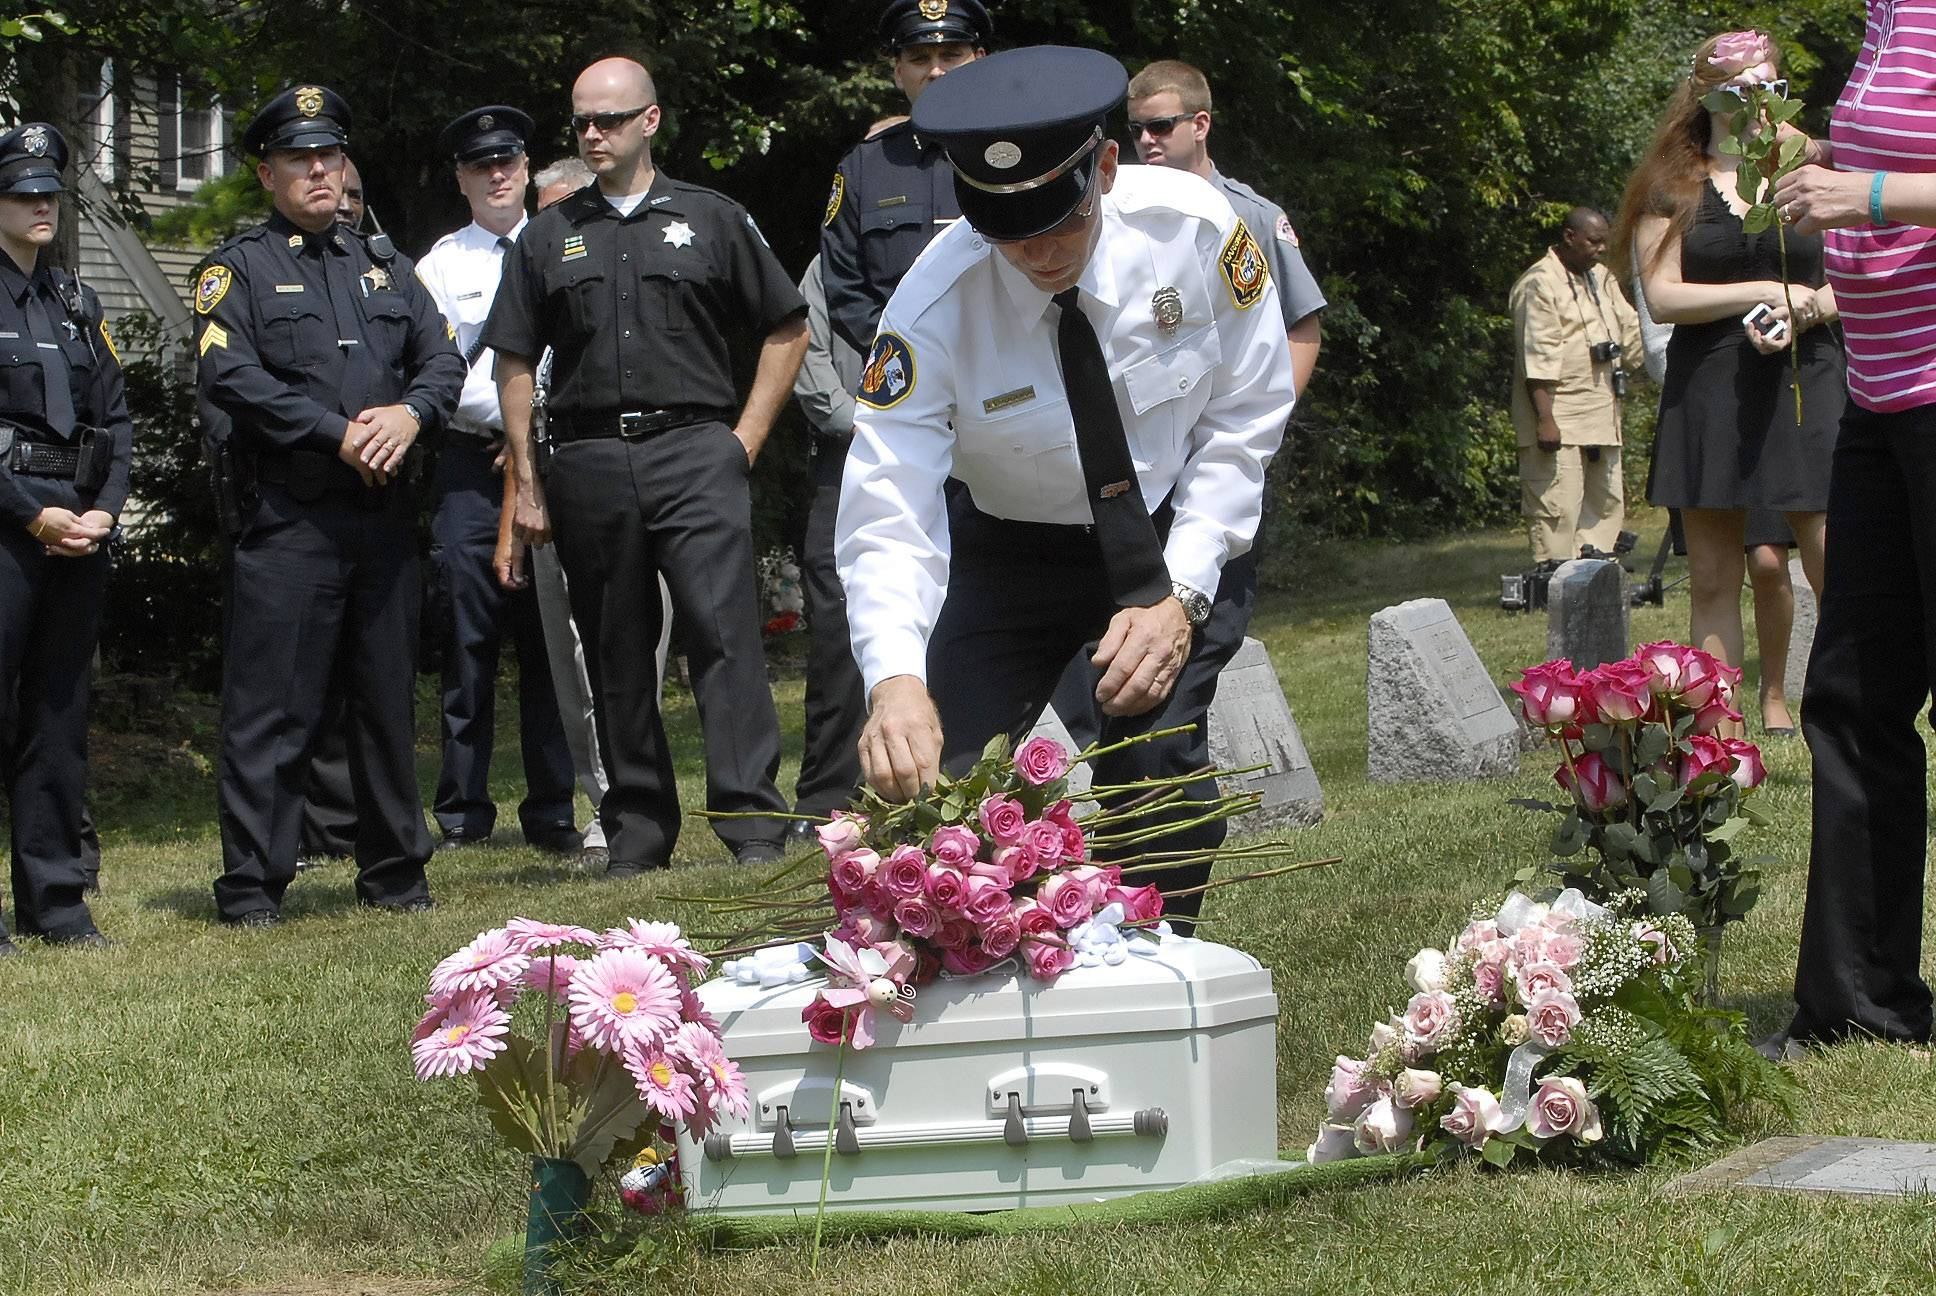 Barrington firefighters and police officers place roses on the casket of 7-month-old Mya Edwards during her burial Thursday at Evergreen Cemetery.